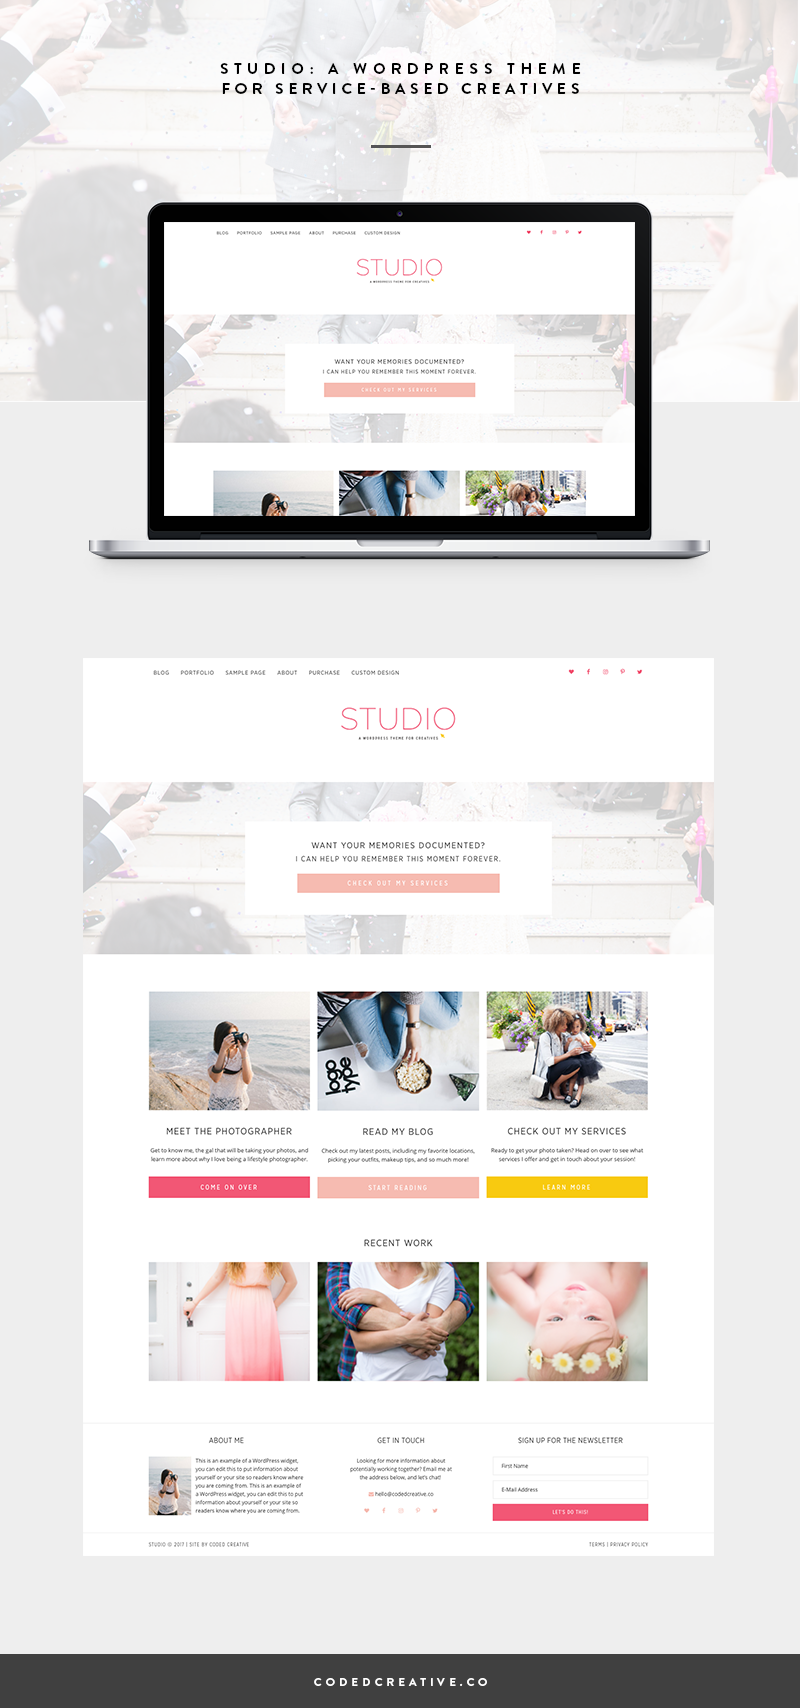 Studio is a simple website and blogging template created for the WordPress platform. It was created for creative business owners looking to show off their work in a way that will lead to booking more clients.